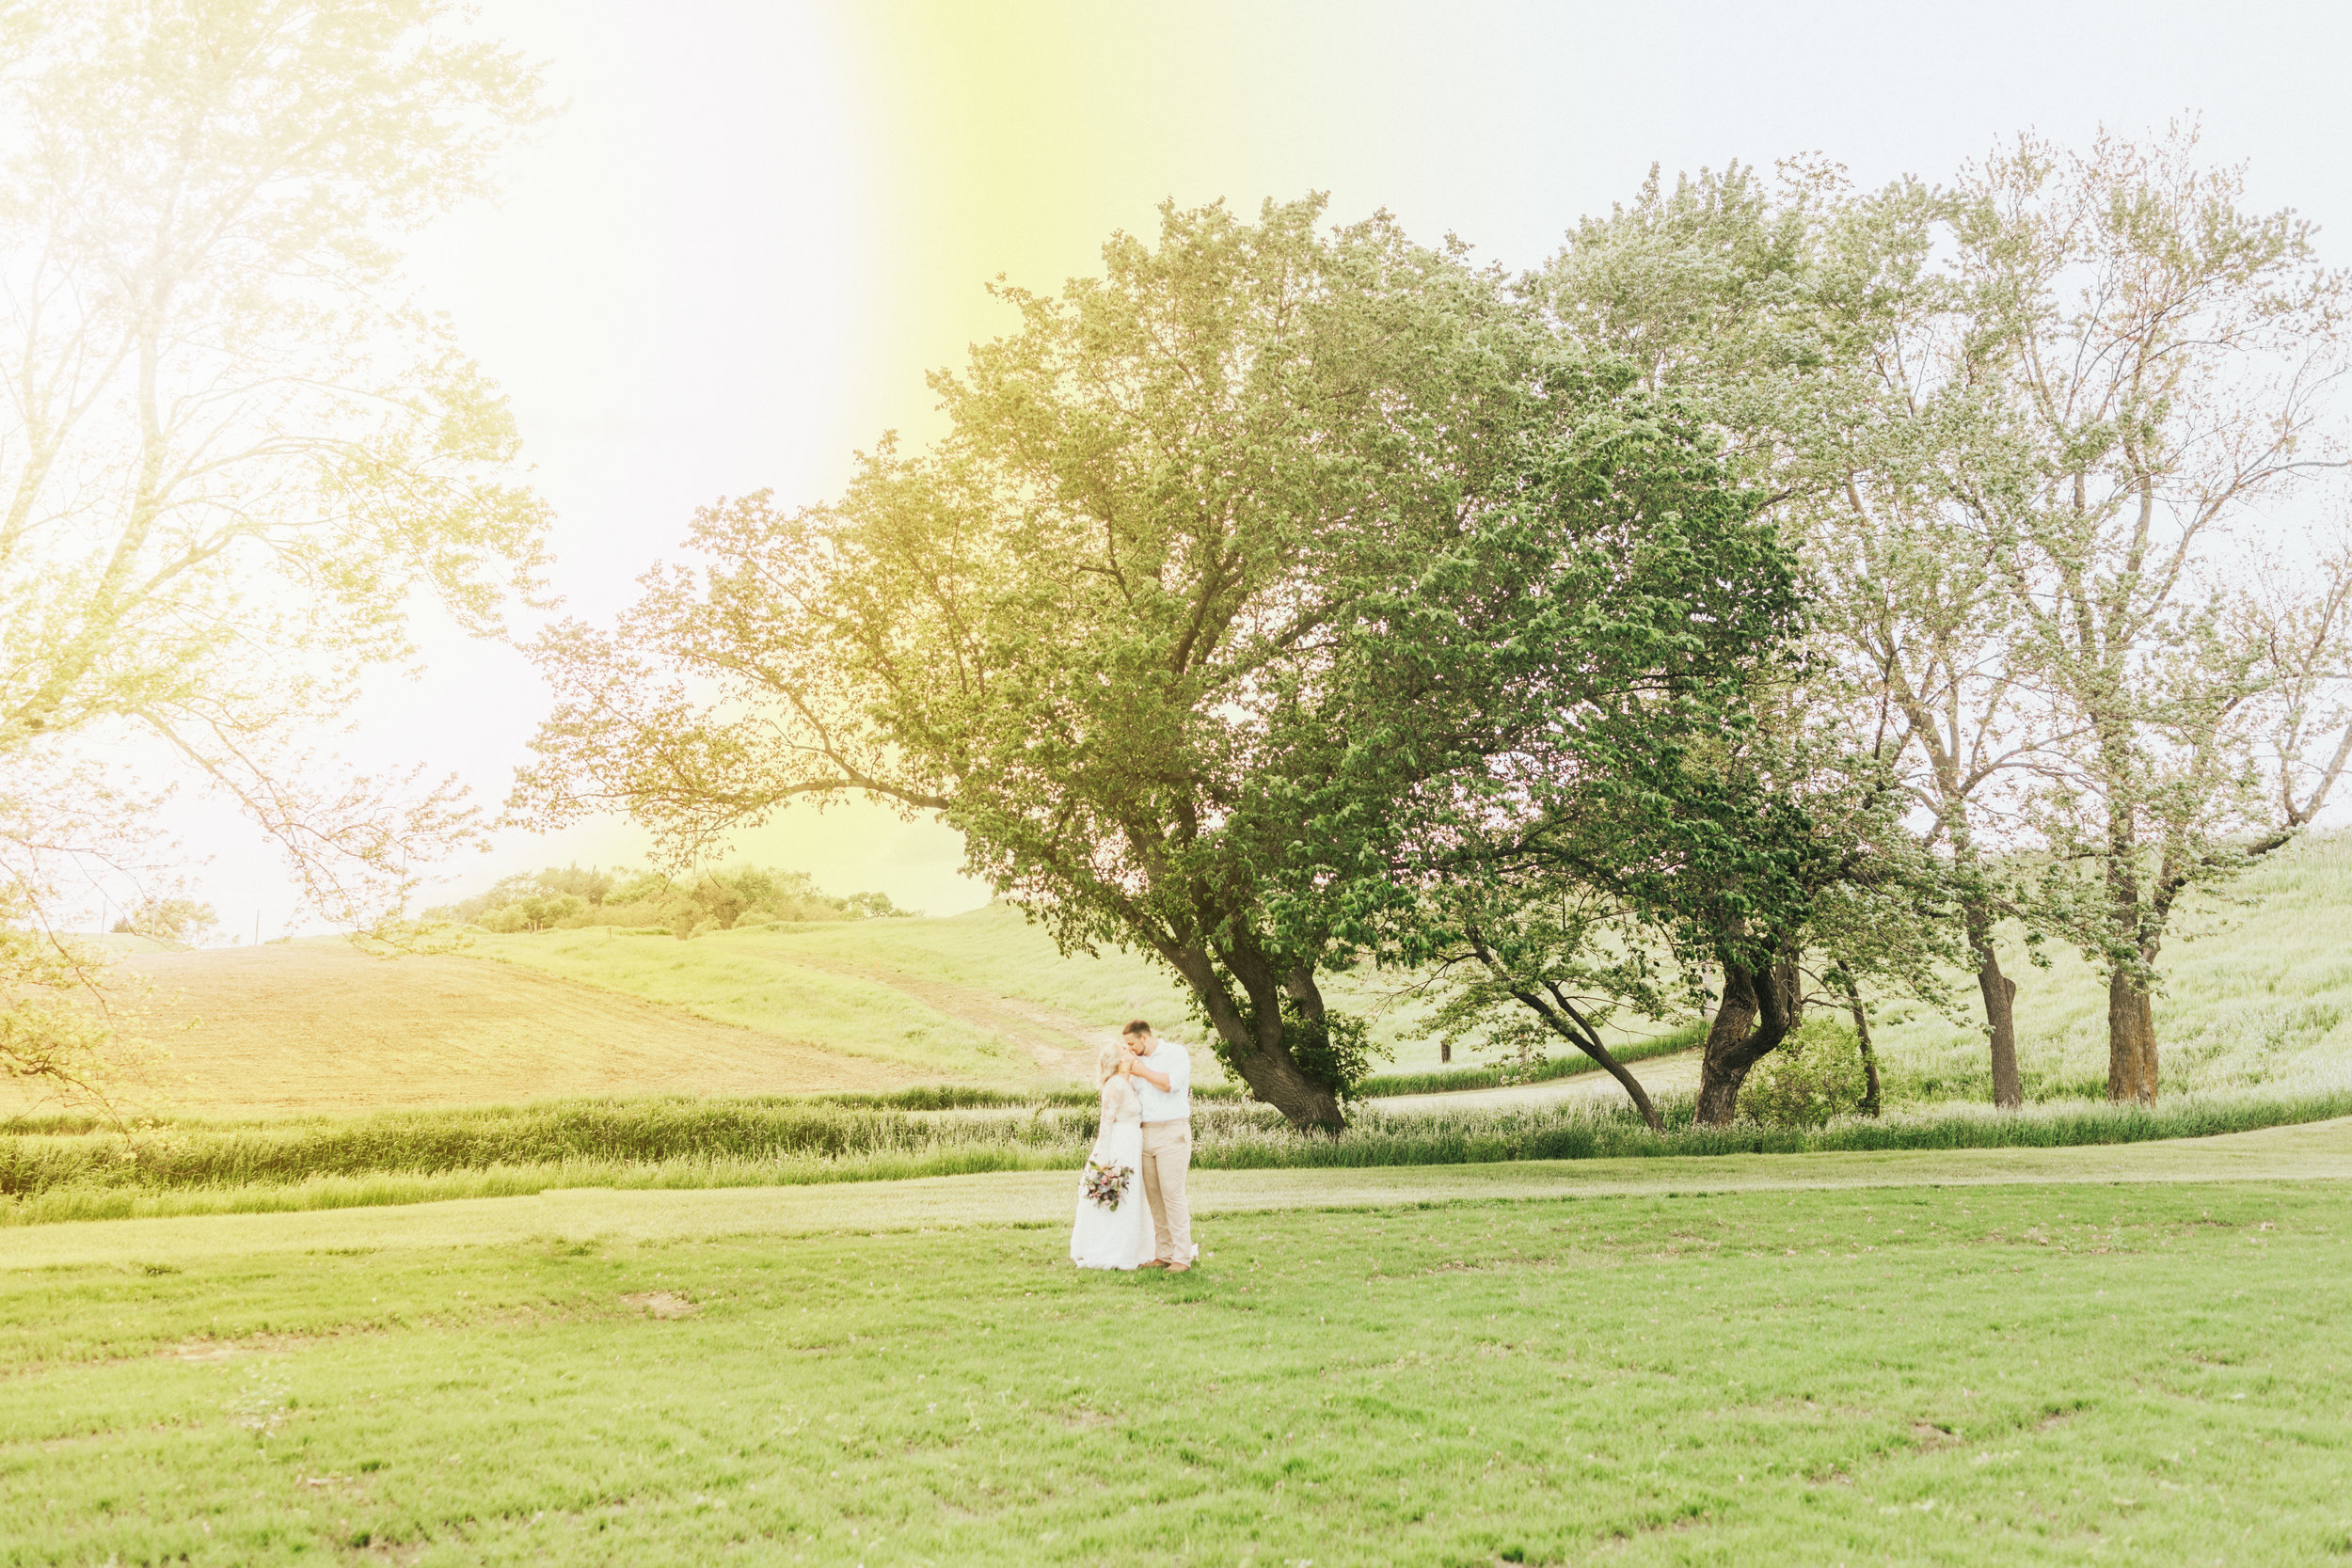 252 tiny-luxe-weddings-iowa-venue-photogeraphy-palace.jpg